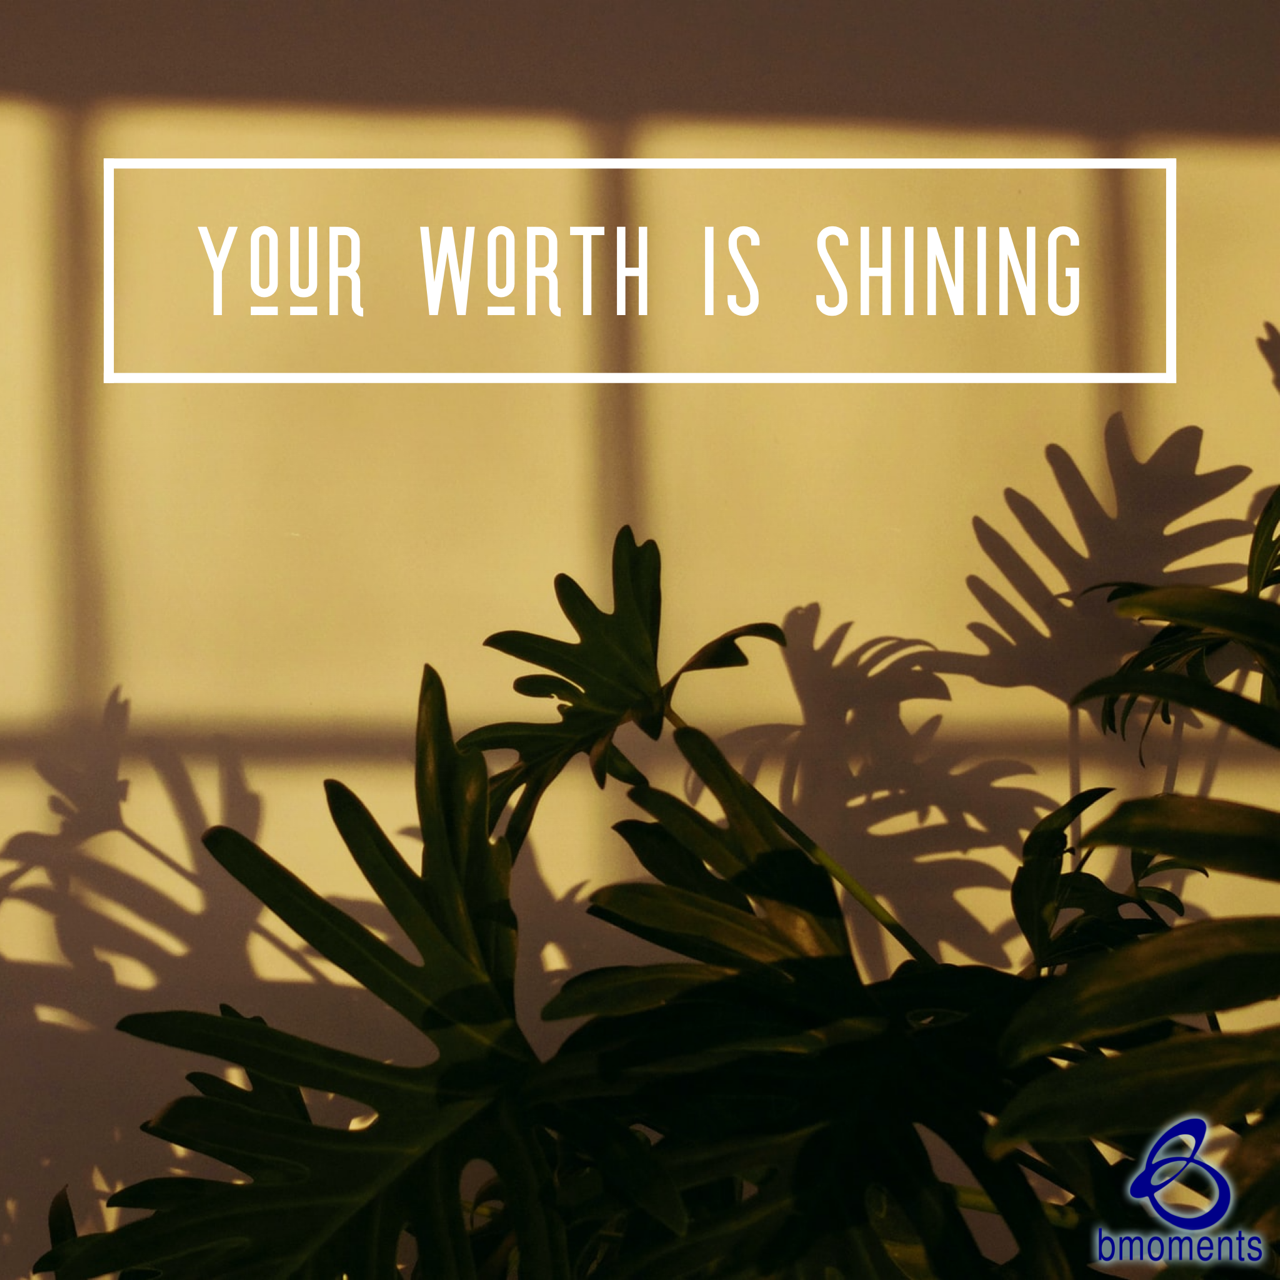 Even in the Shadows, Your Worth Shines